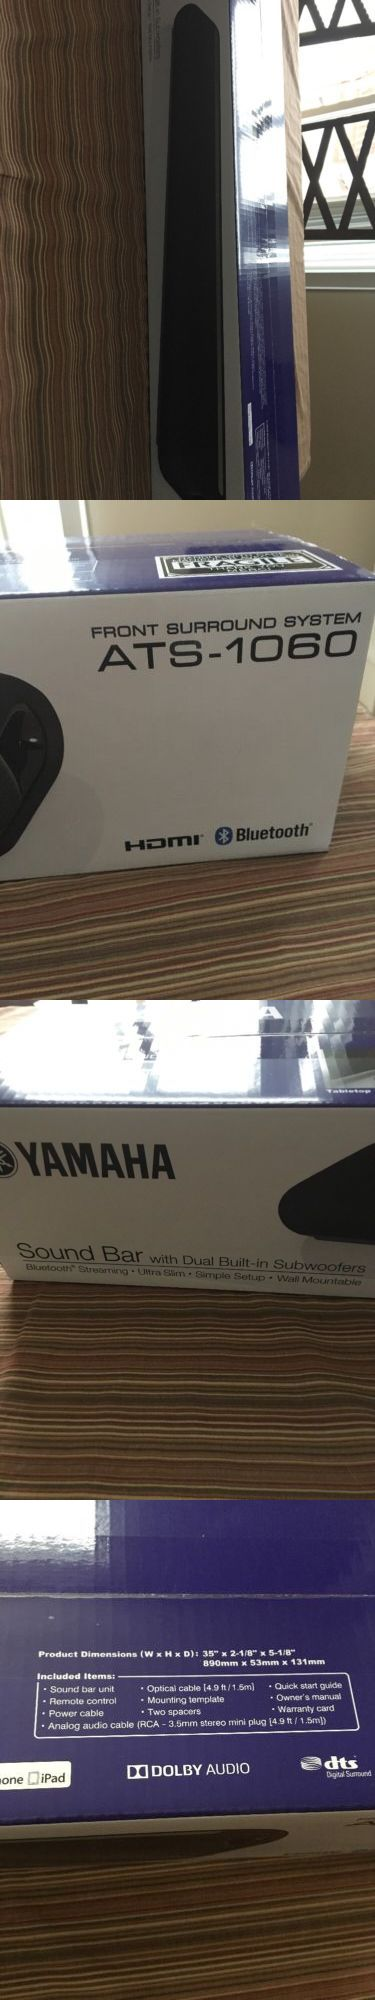 Home Theater Systems: Yamaha Sound Bar W Dual Built-In Subwoofers Model Ats-1060 Black New And Sealed -> BUY IT NOW ONLY: $174.95 on eBay!